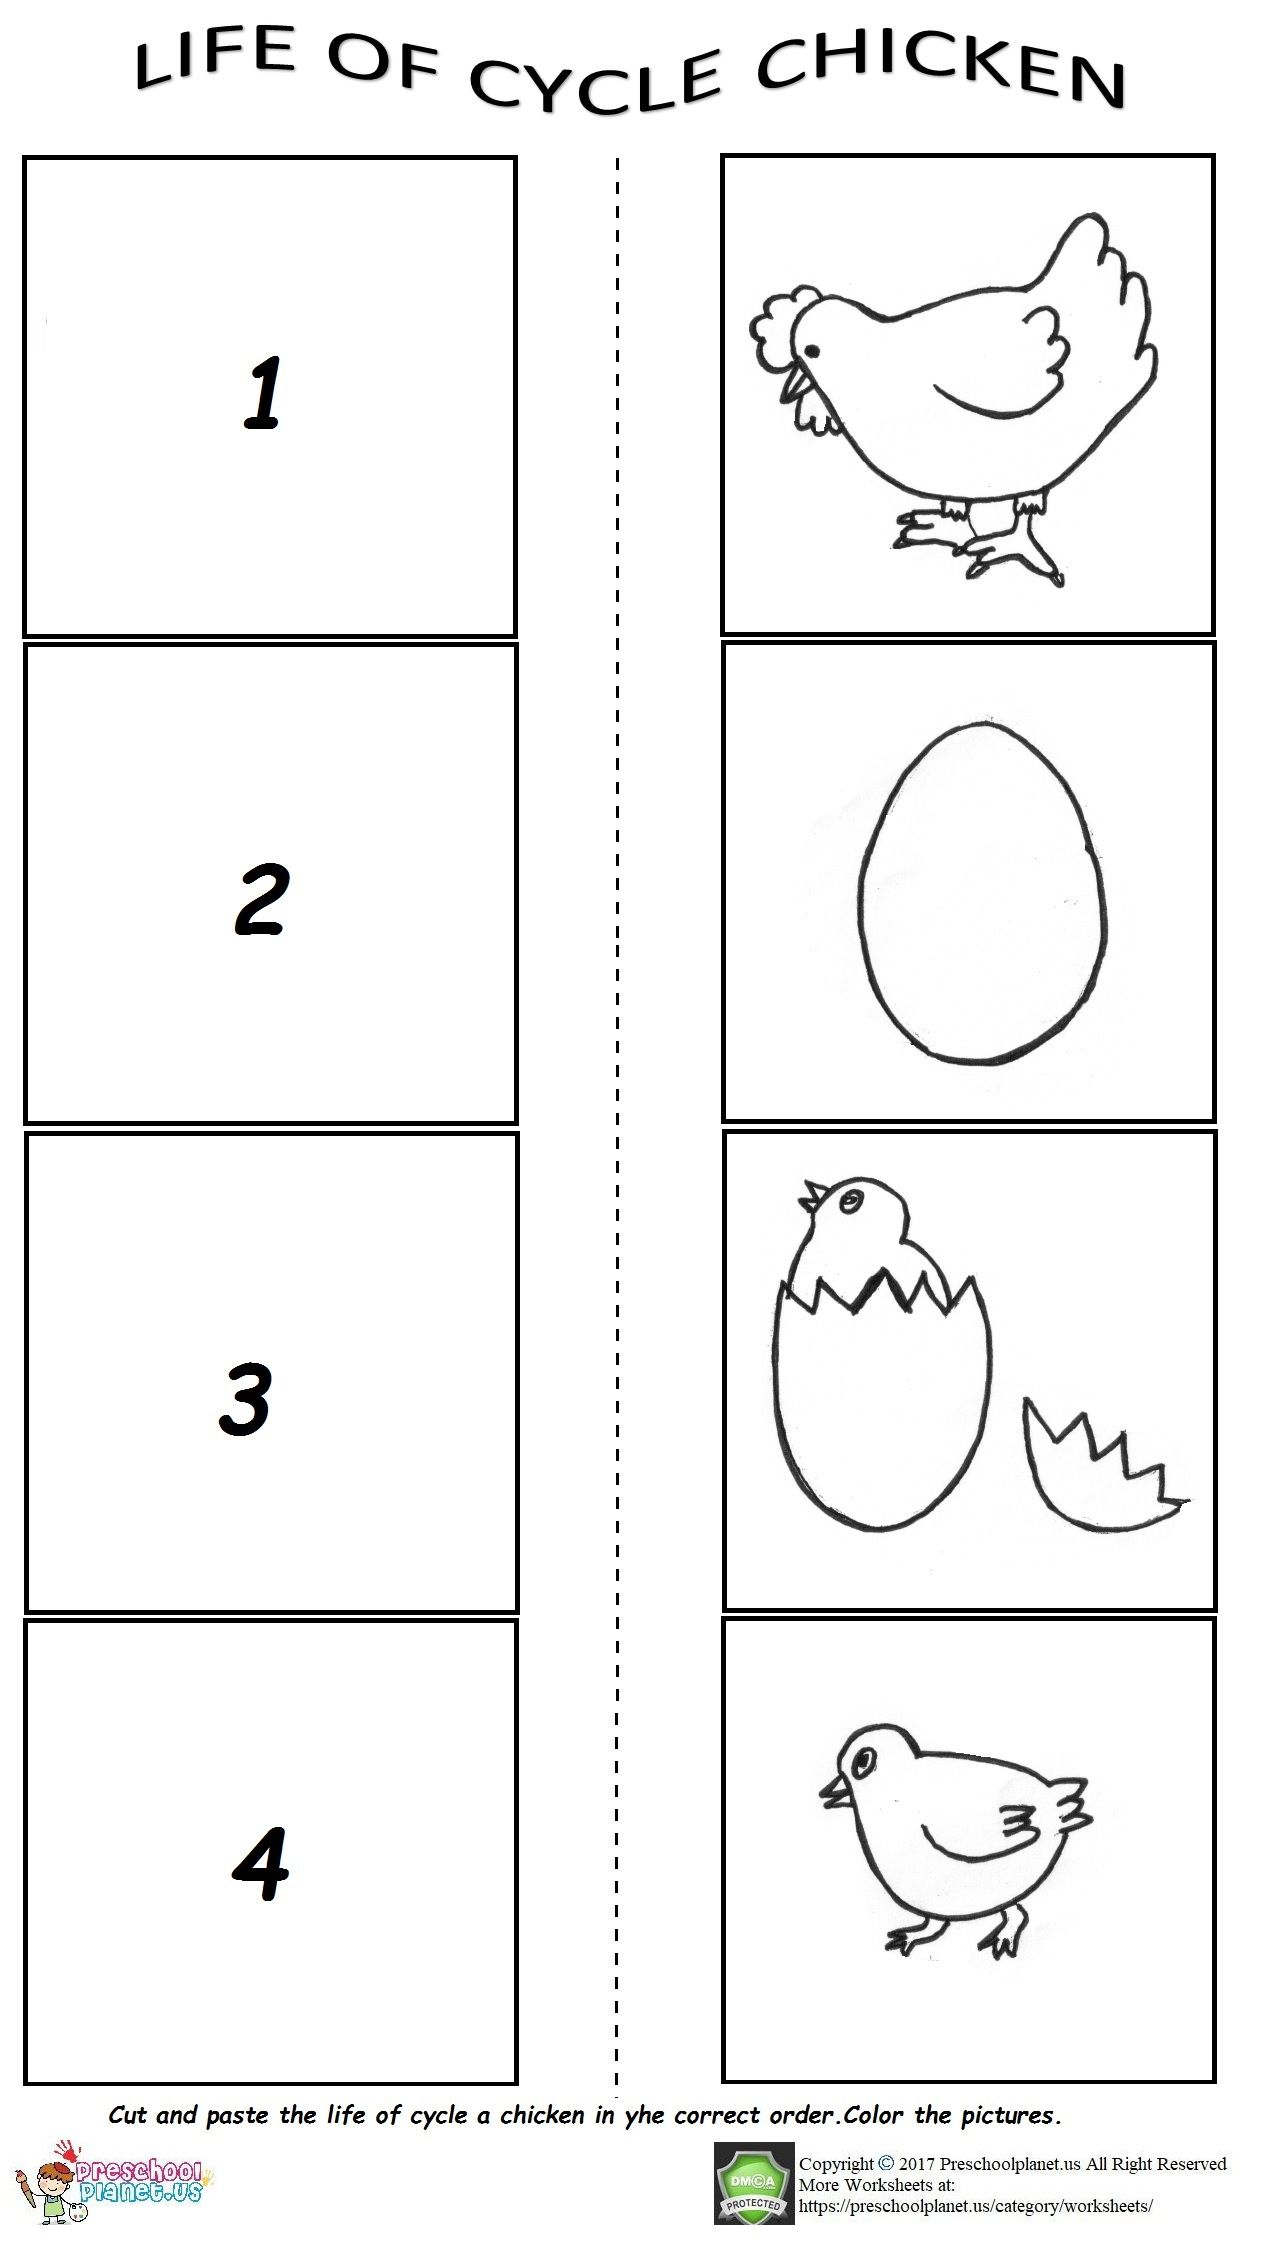 worksheet Dear Zoo Worksheet life of cycle worksheet for preschool worksheets cycling and chicken preschoolers